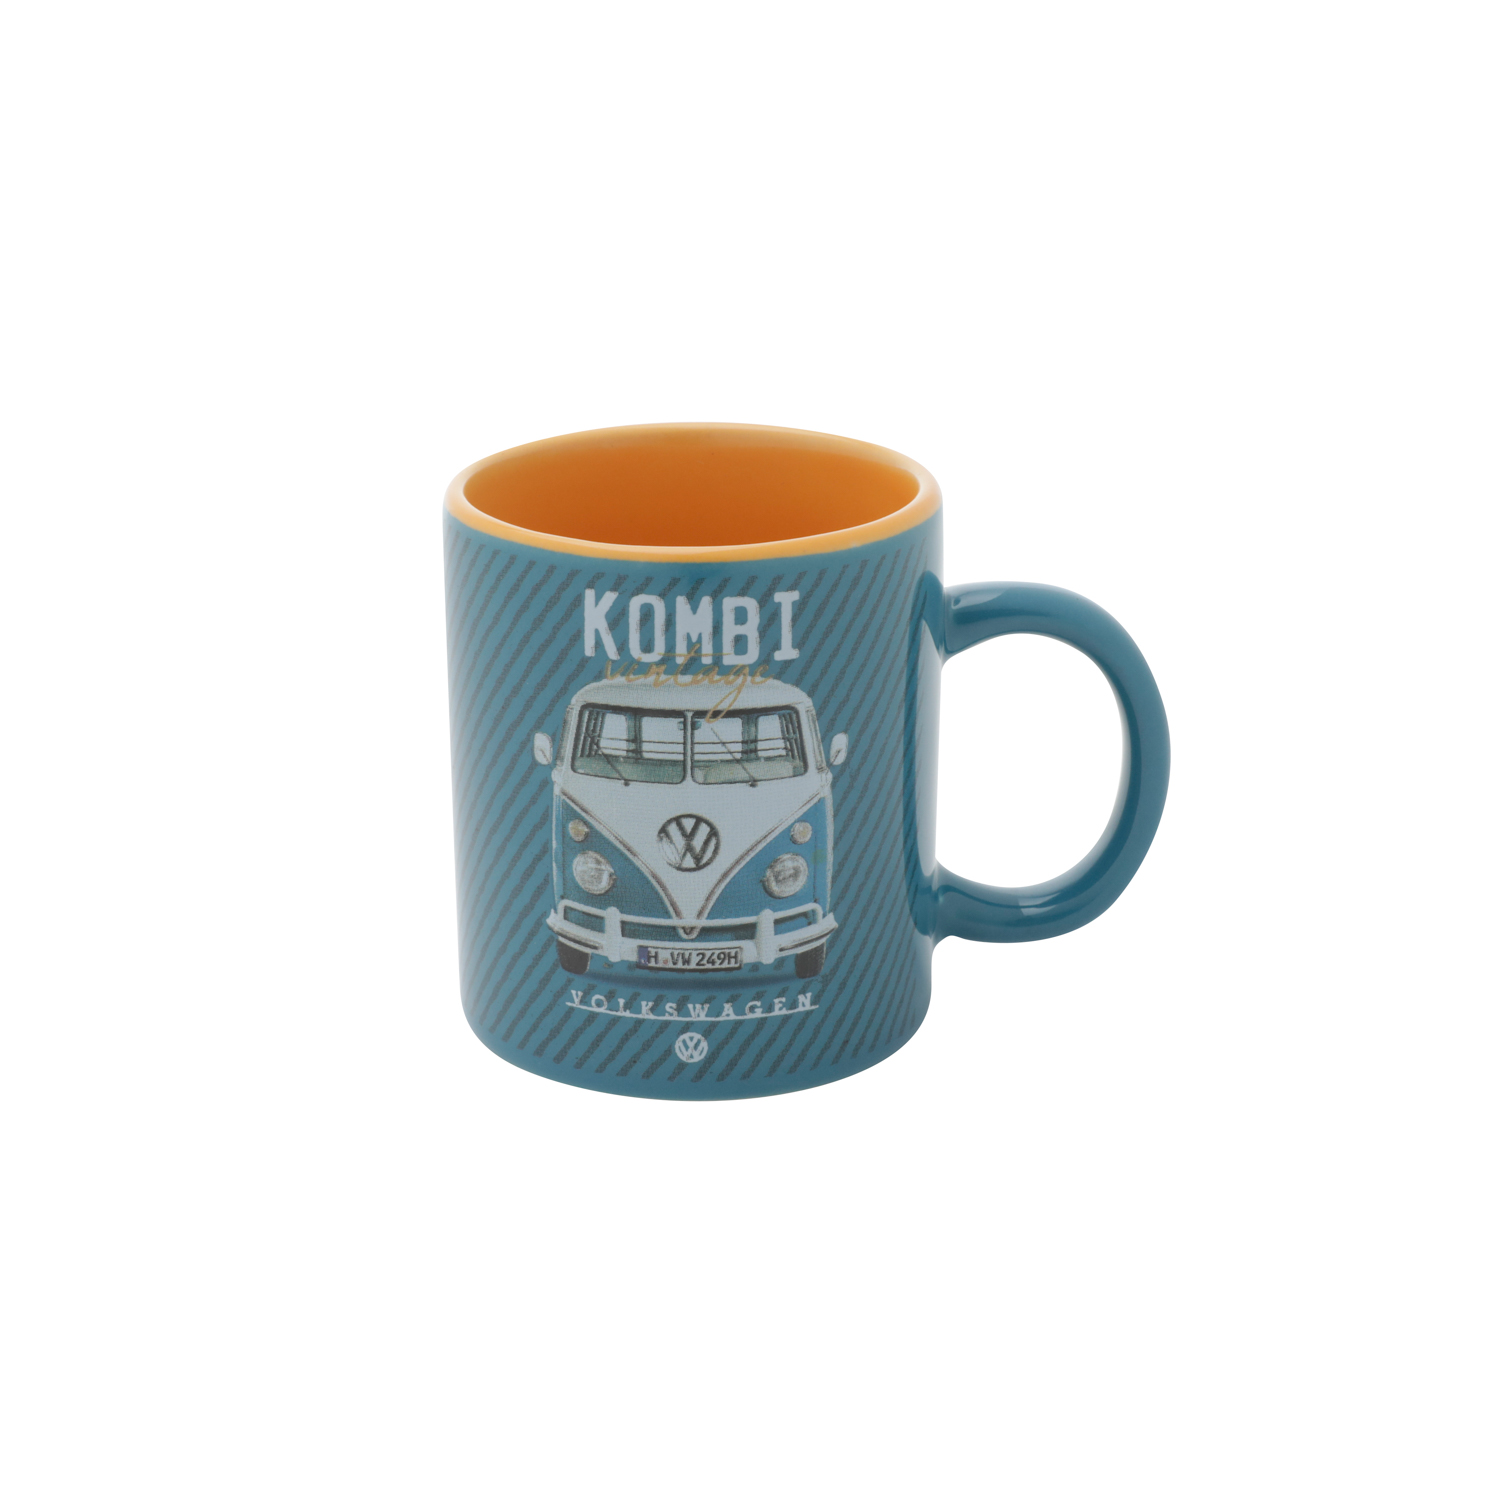 MINI CANECA PORCELANA VW KOMBI CLASSIC BLUE AZUL 6,7x6,7x7,3 cm - 140ml